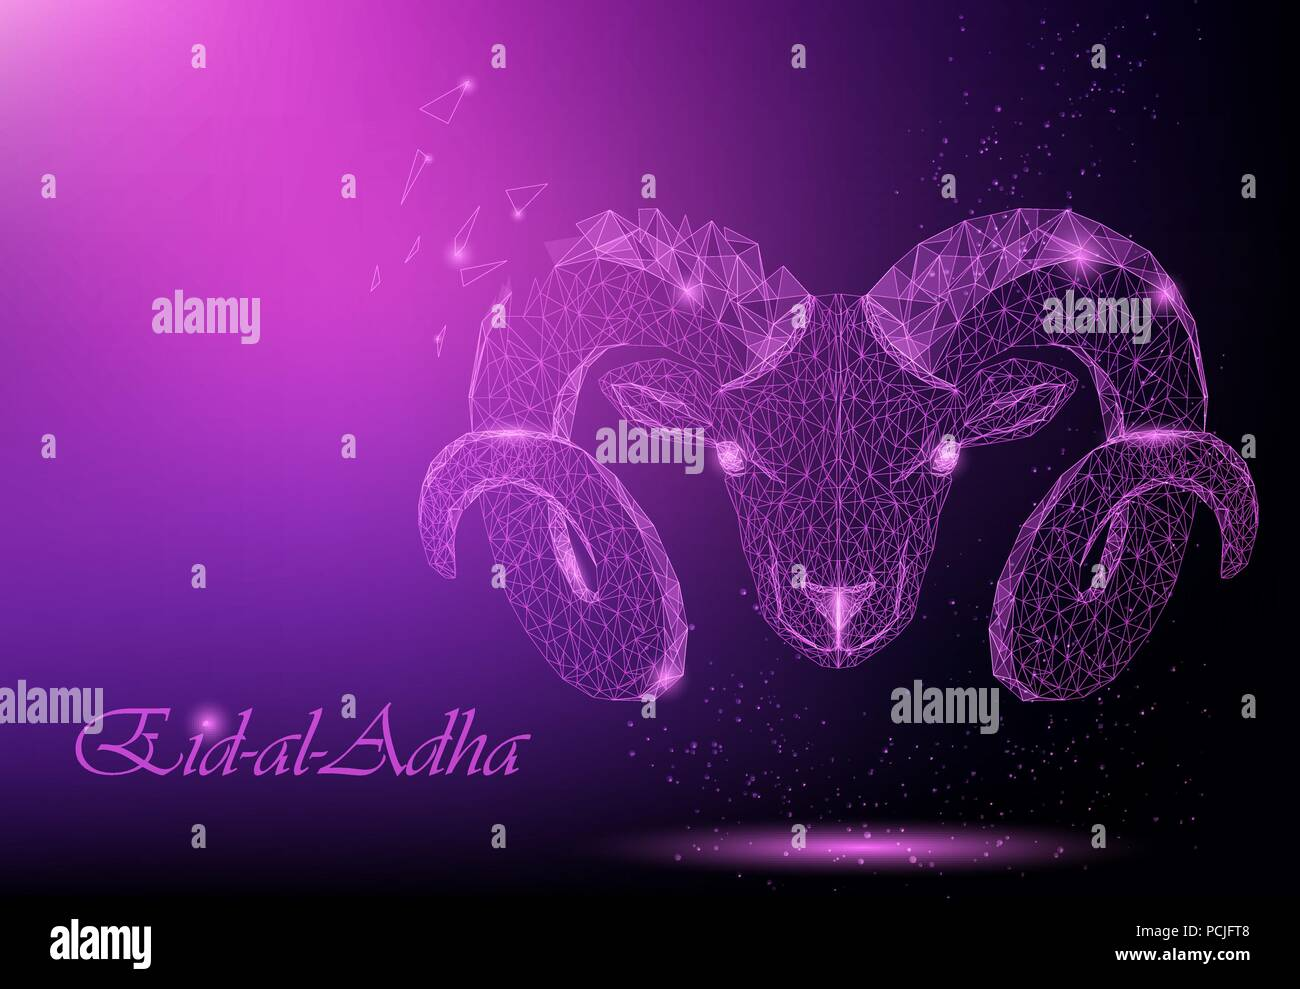 Hijra And Islam Stock Photos & Hijra And Islam Stock Images - Alamy